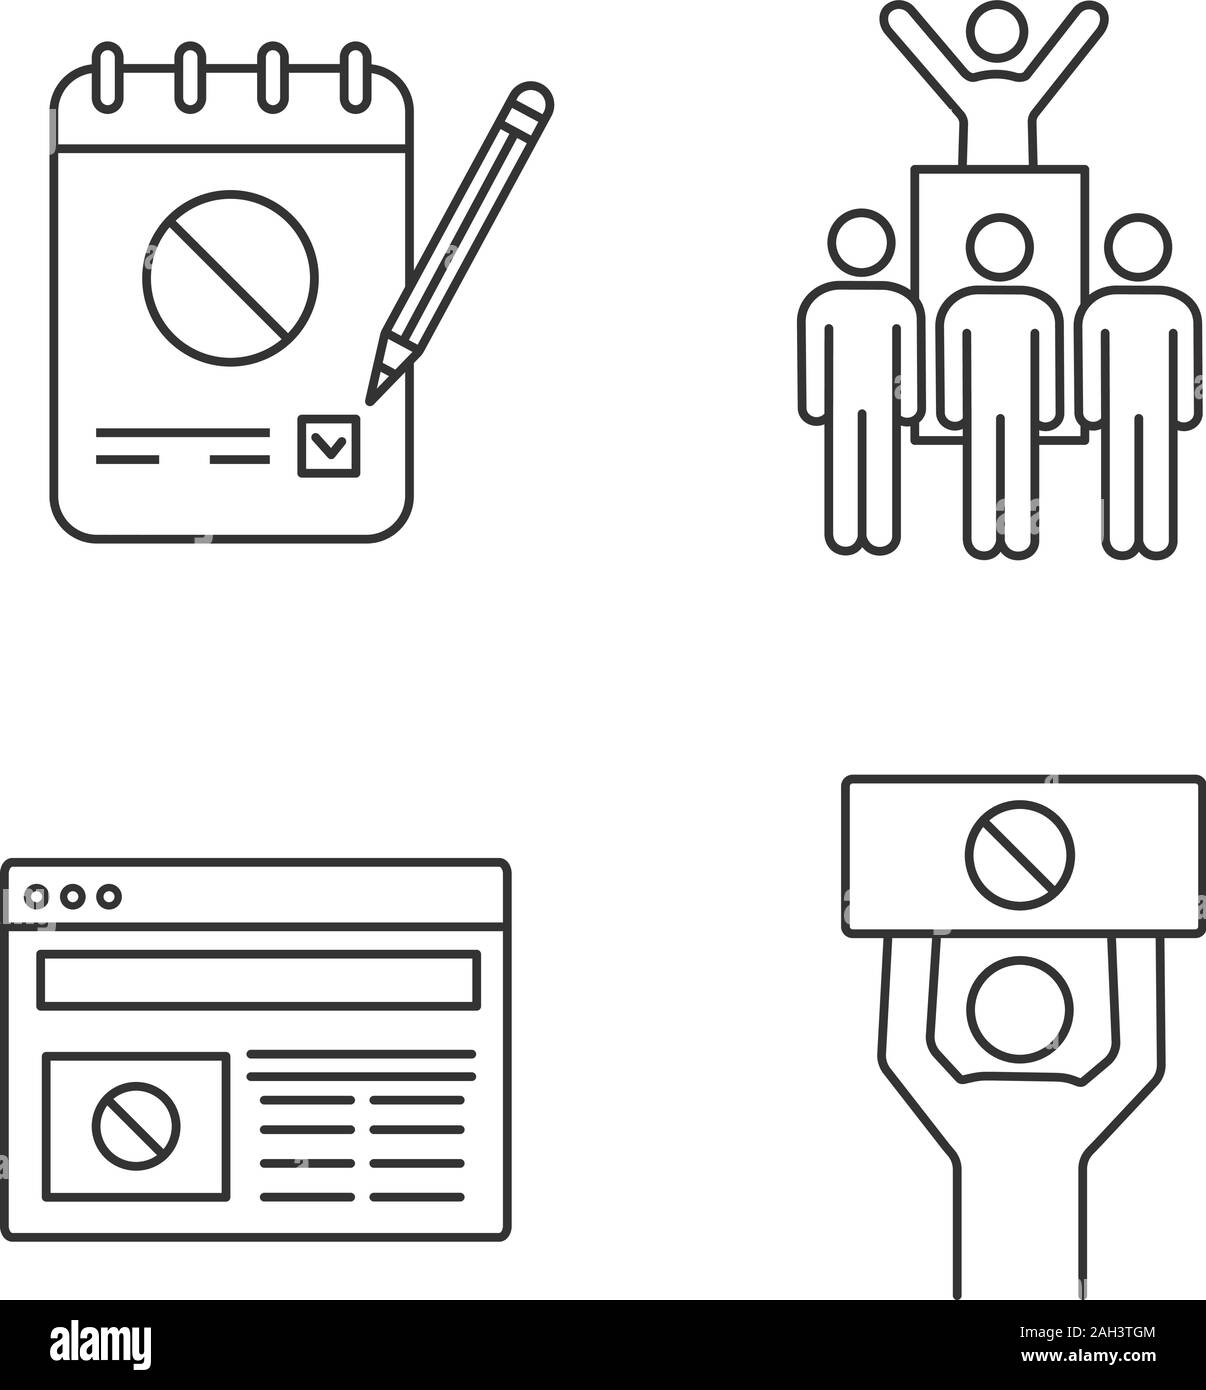 Protest action linear icons set. Petition, protest leader, social movement, political internet news. Thin line contour symbols. Isolated vector outlin Stock Vector